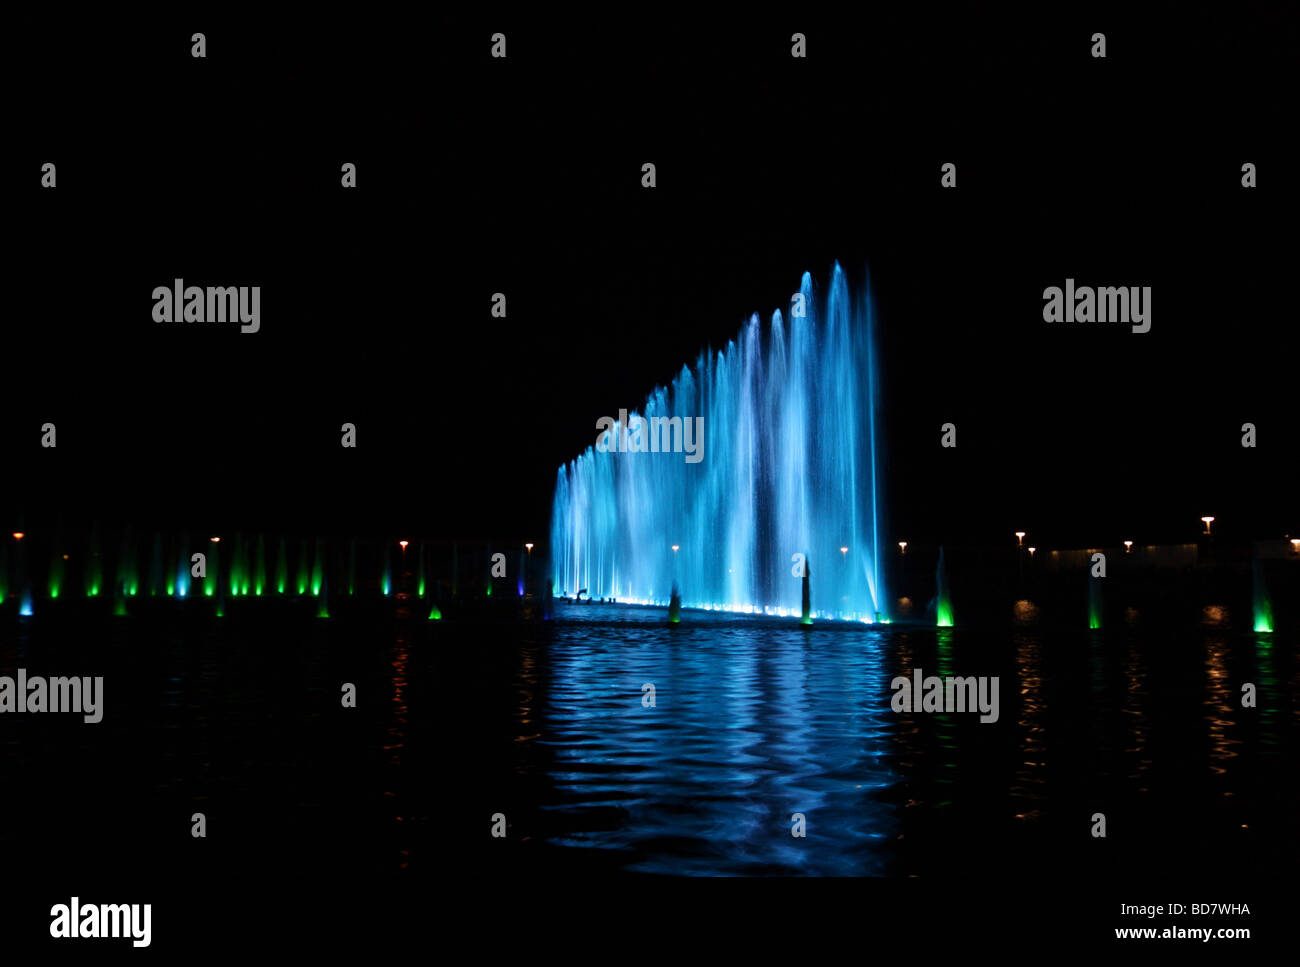 Multimedia fountain in Wroclaw, Poland at night - Stock Image